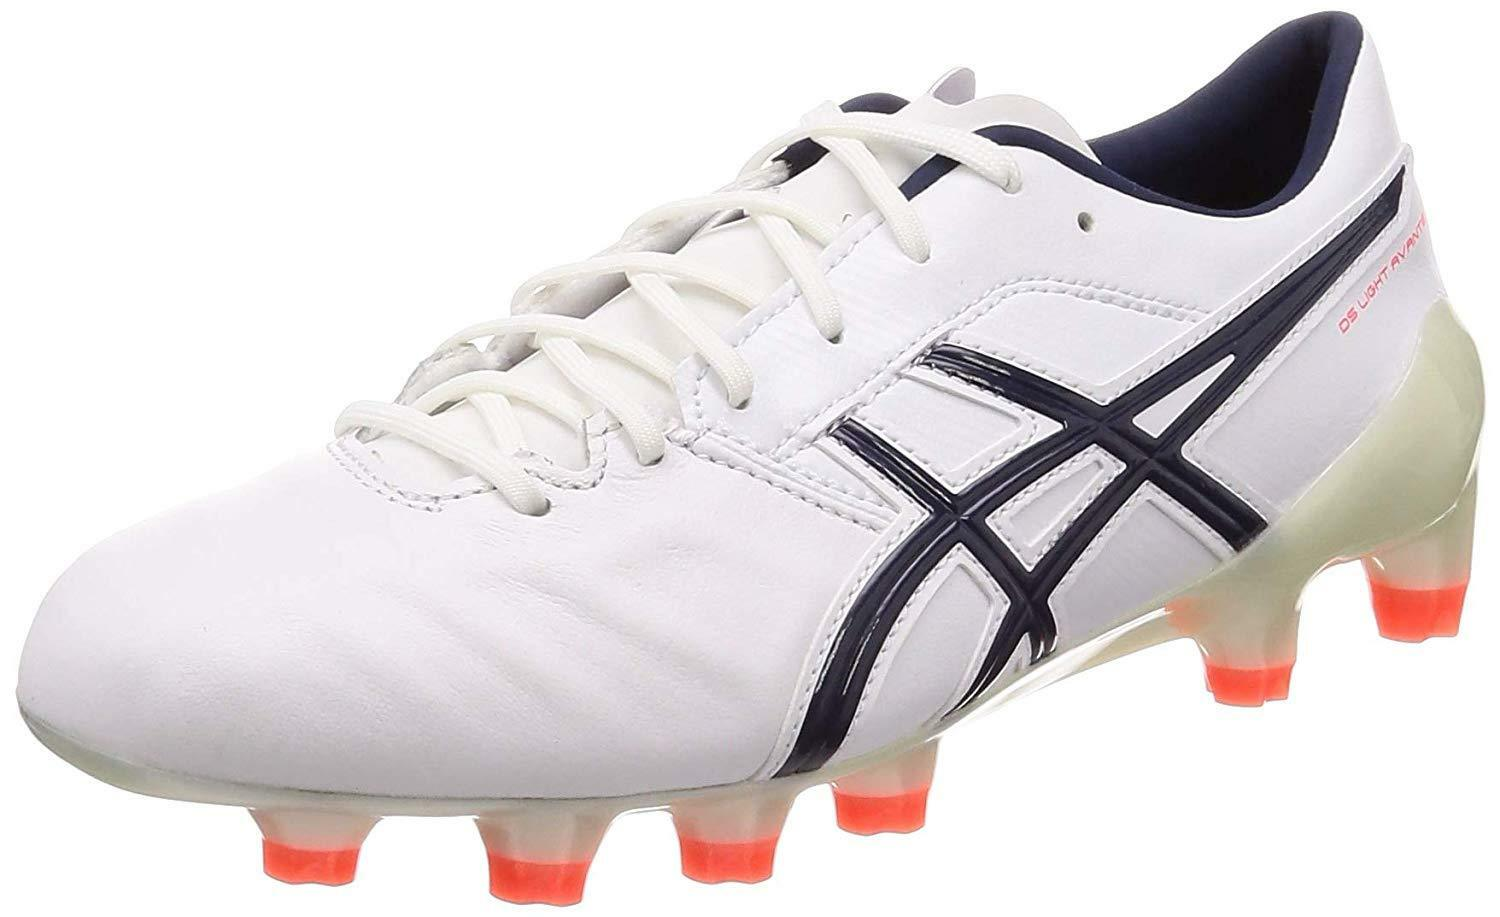 ASICS Football Soccer Spike scarpe DS LIGHT AVANTE 1101A009 bianca US1028cm